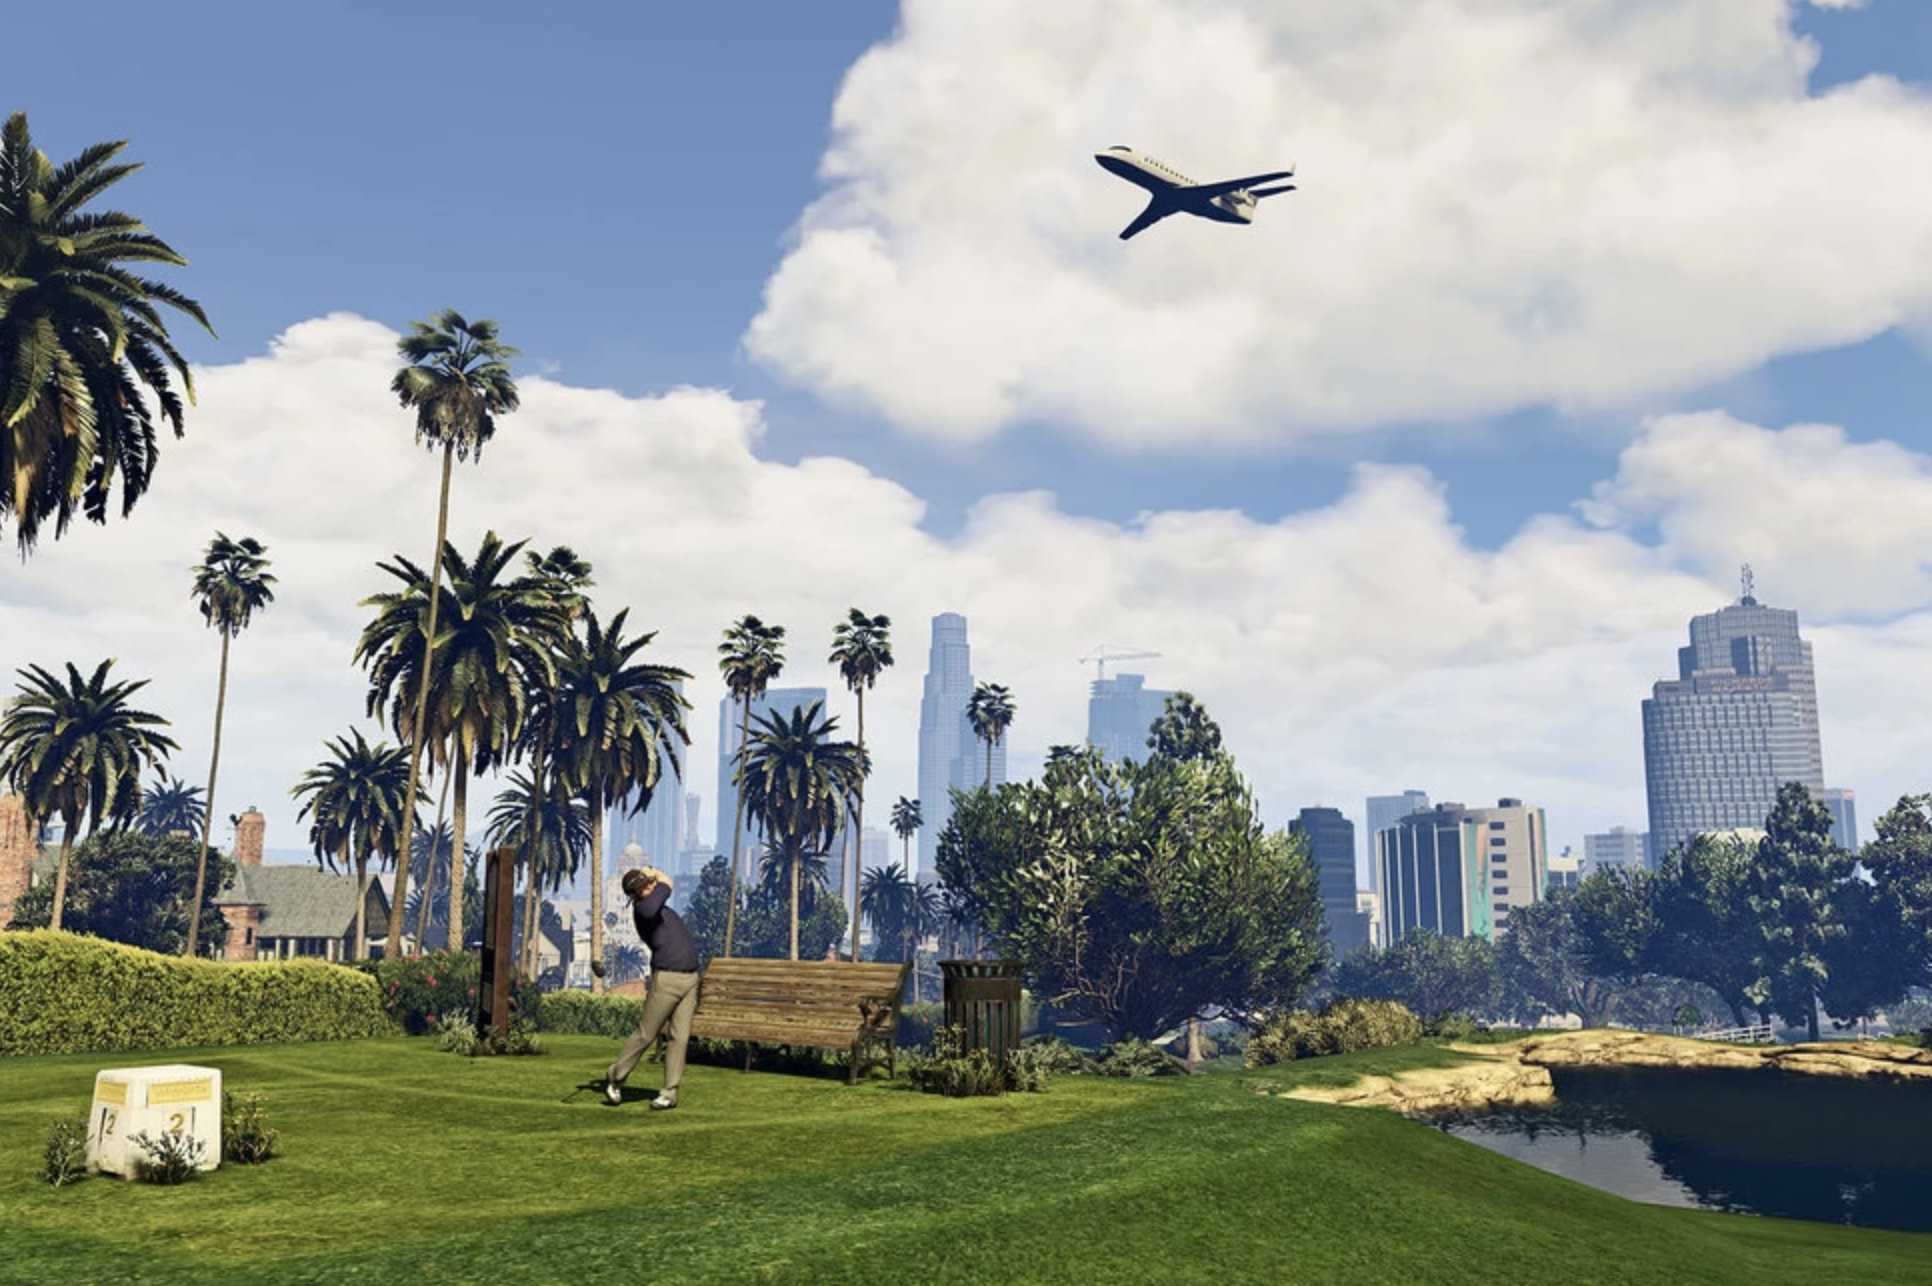 Grand Theft Auto 6: Release Date, Platforms, And Everything You Need To Know About GTA VI